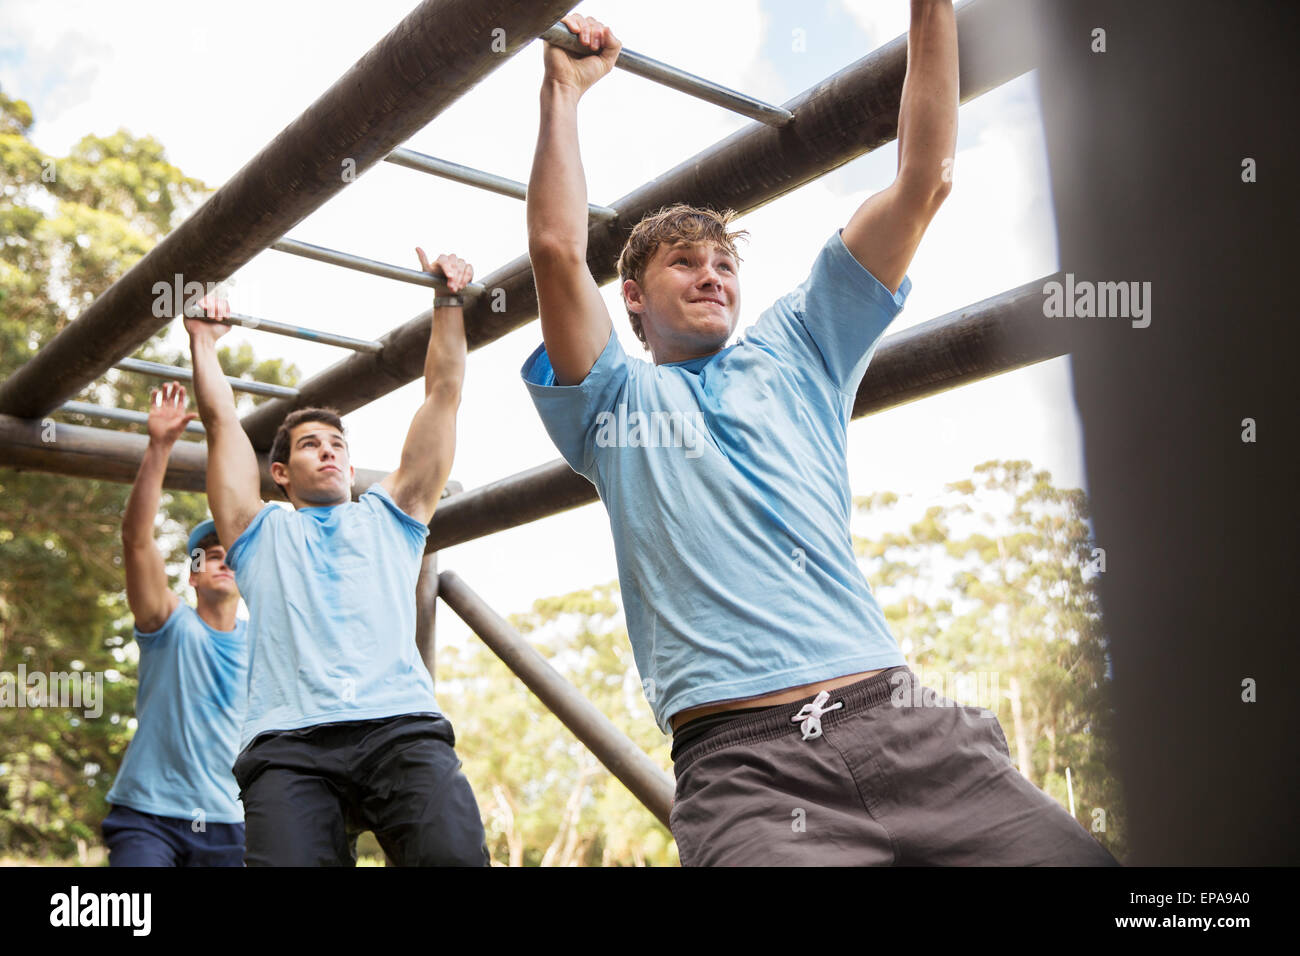 man monkey bars boot camp obstacle course - Stock Image